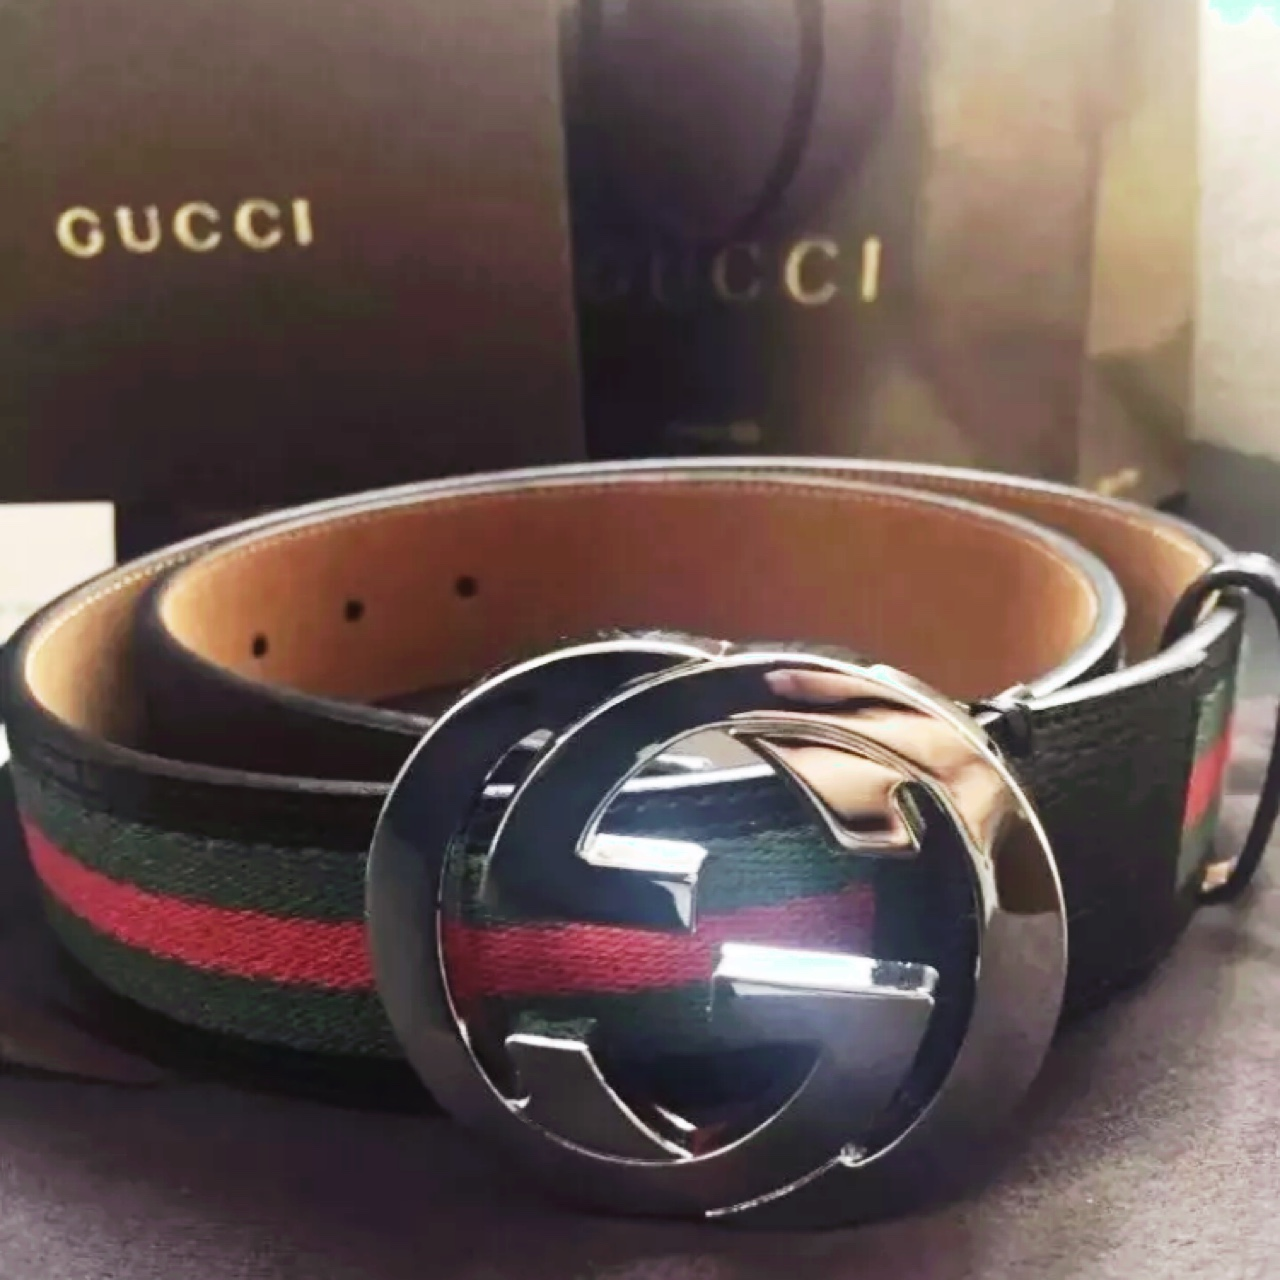 do all real gucci belts have serial numbers